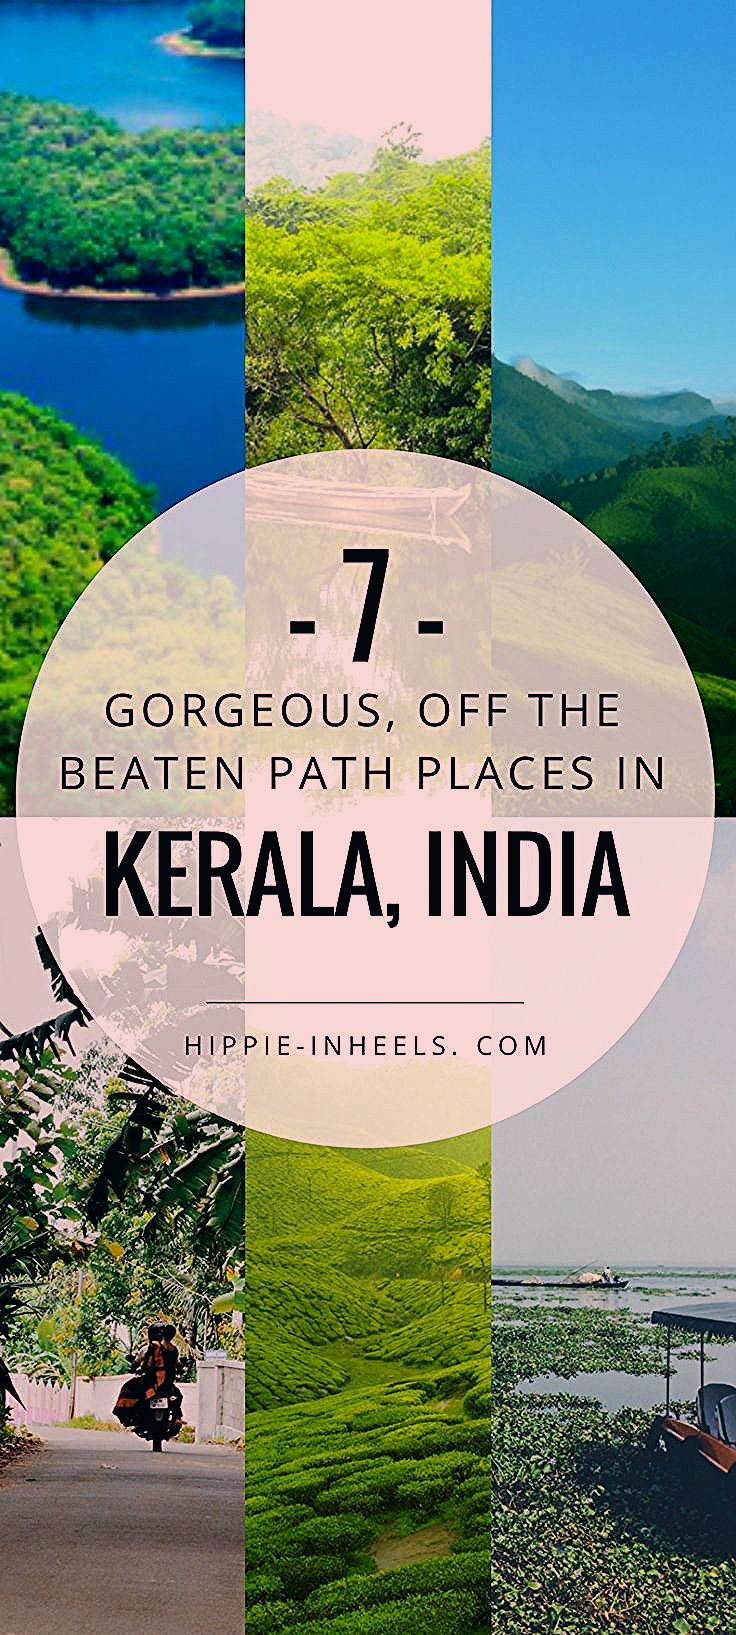 Photo of 7 Offbeat Travel Destinations to Visit in Kerala That Will Blow Your Mind! – Hippie In Heels